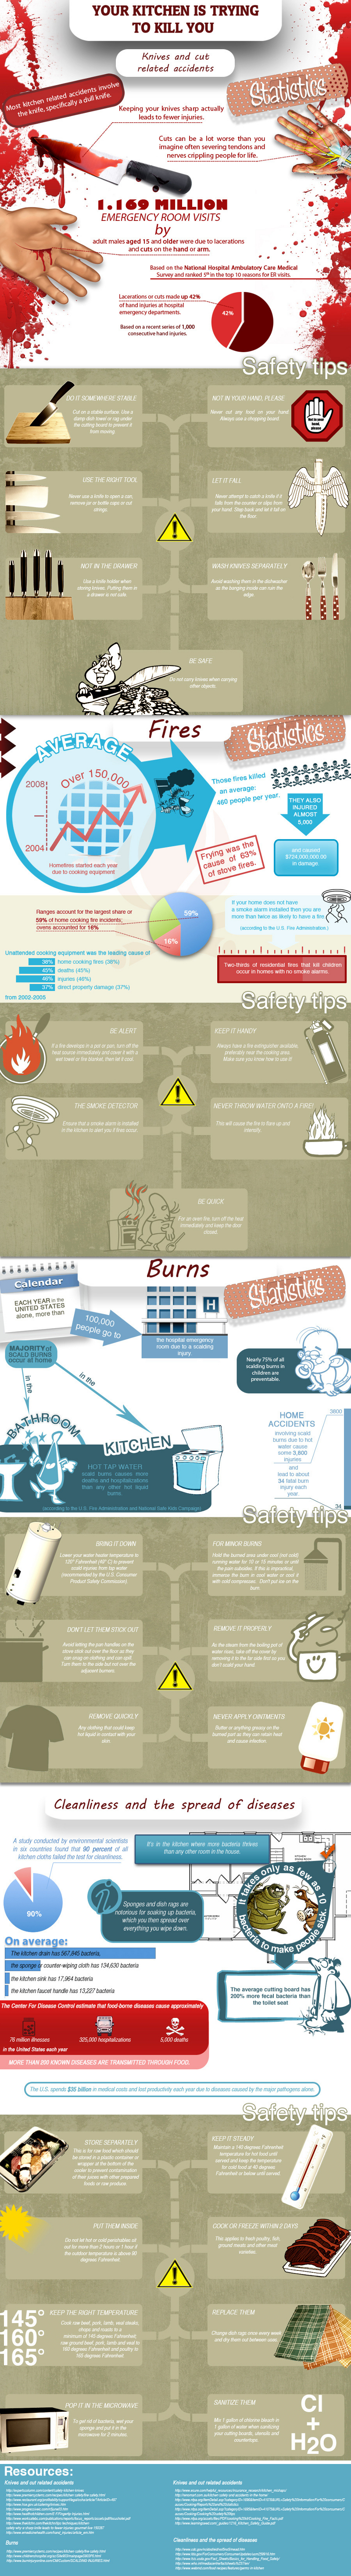 Kitchen Safety Statistics